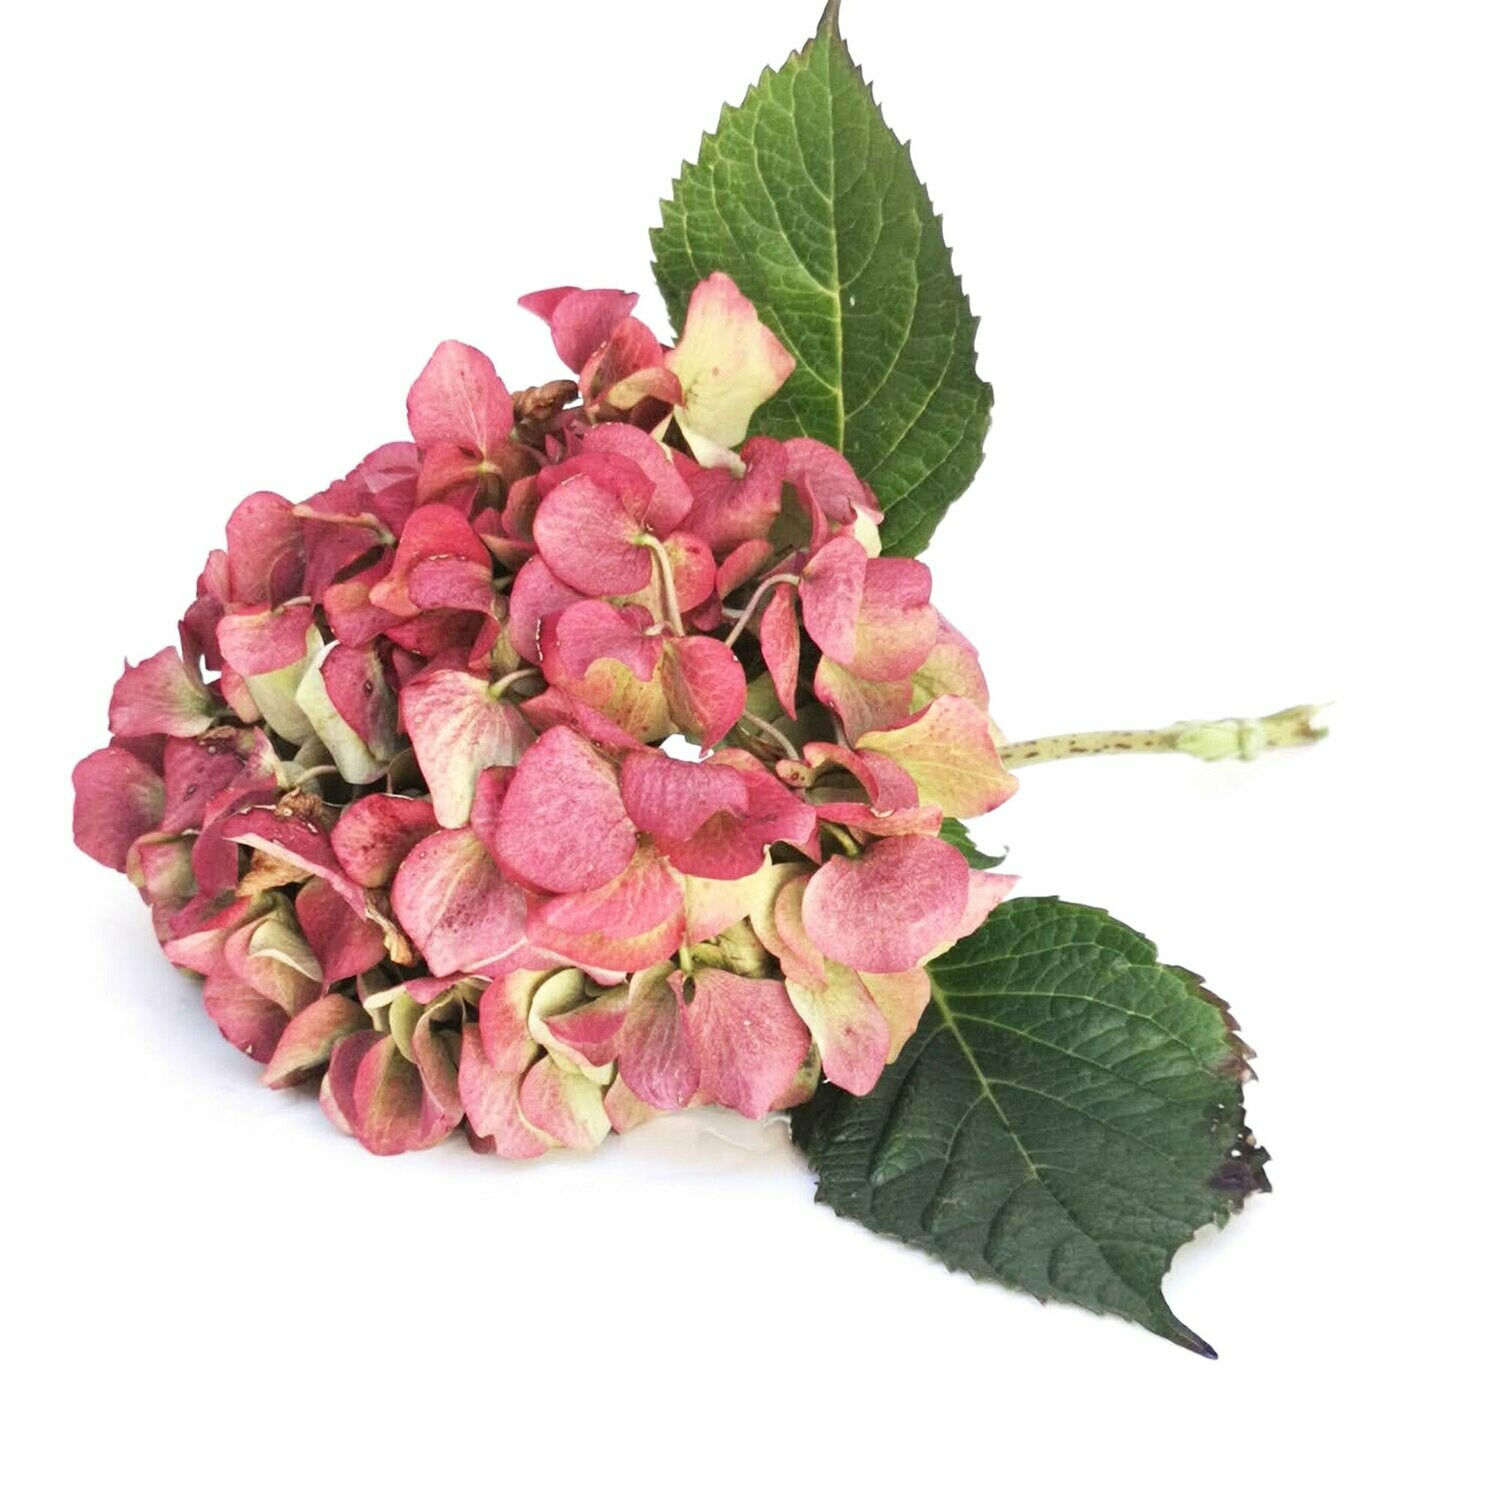 Hydrangea Heads Natural for drying, flower heads, dried flowers